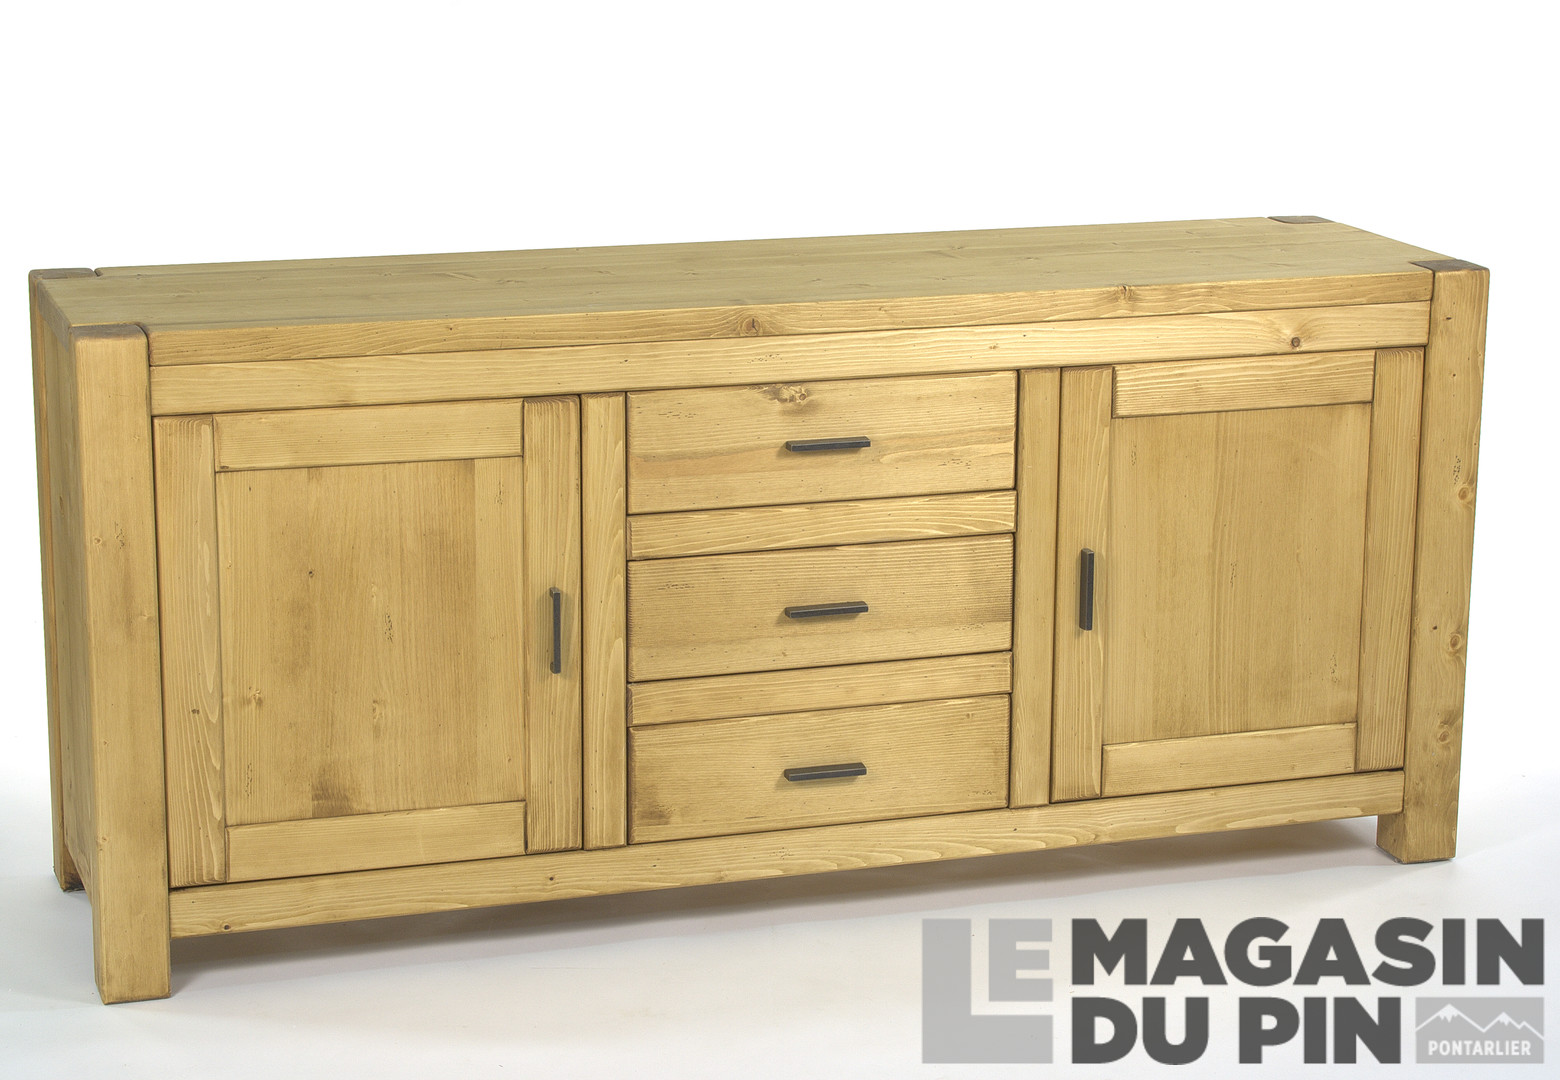 magasin de meuble pontarlier id es de conception sont int ressants votre d cor. Black Bedroom Furniture Sets. Home Design Ideas